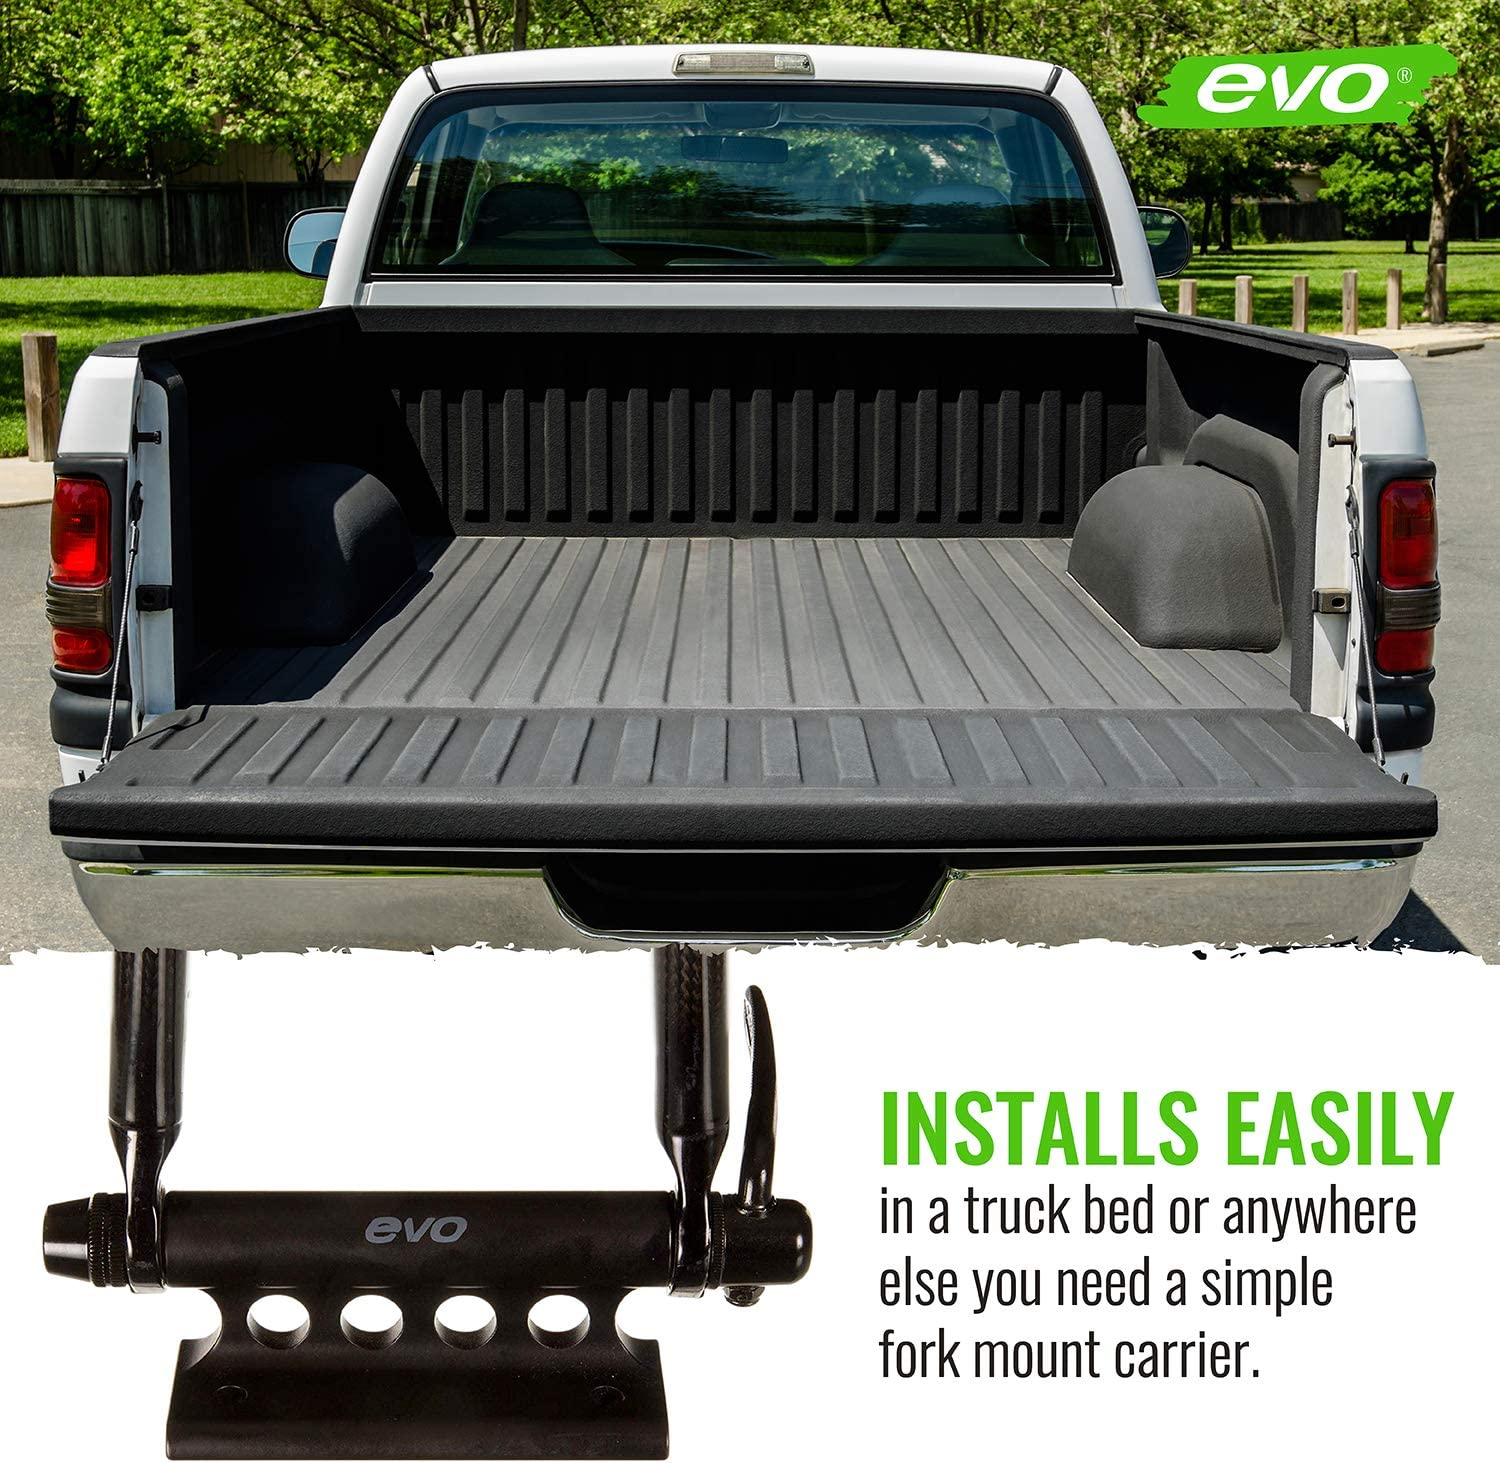 EVO Quick Release Fork Mount Truck Bed Bicycle Carrier